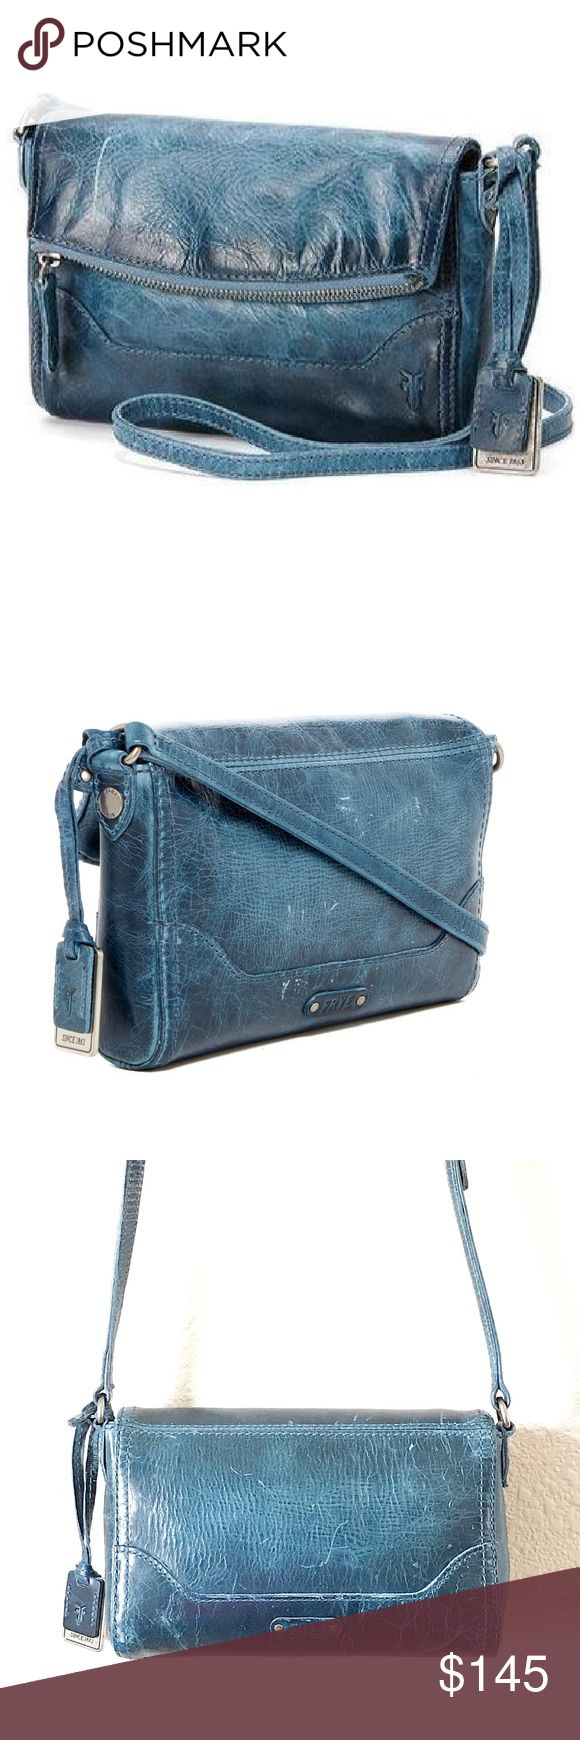 FRYE MELISSA FOLD-OVER BLUE LEATHER CROSS-BODY💙 Gorgeous FRYE distressed leather cross-body. Brand new w/tags & Dust Bag.    SELLERS NOTE:  •All items are inspected and described as thoroughly and honestly as possible.  •Items are sold as is (as described)  •Each order is packaged with extreme CARE & SHIPPED SAME/NEXT BUSINESS DAY, unless seller communicates otherwise.  •Buy with comfort from a top seller (refer to love notes) •Sellers goal is to make EVERY customer happy! Frye Bags…